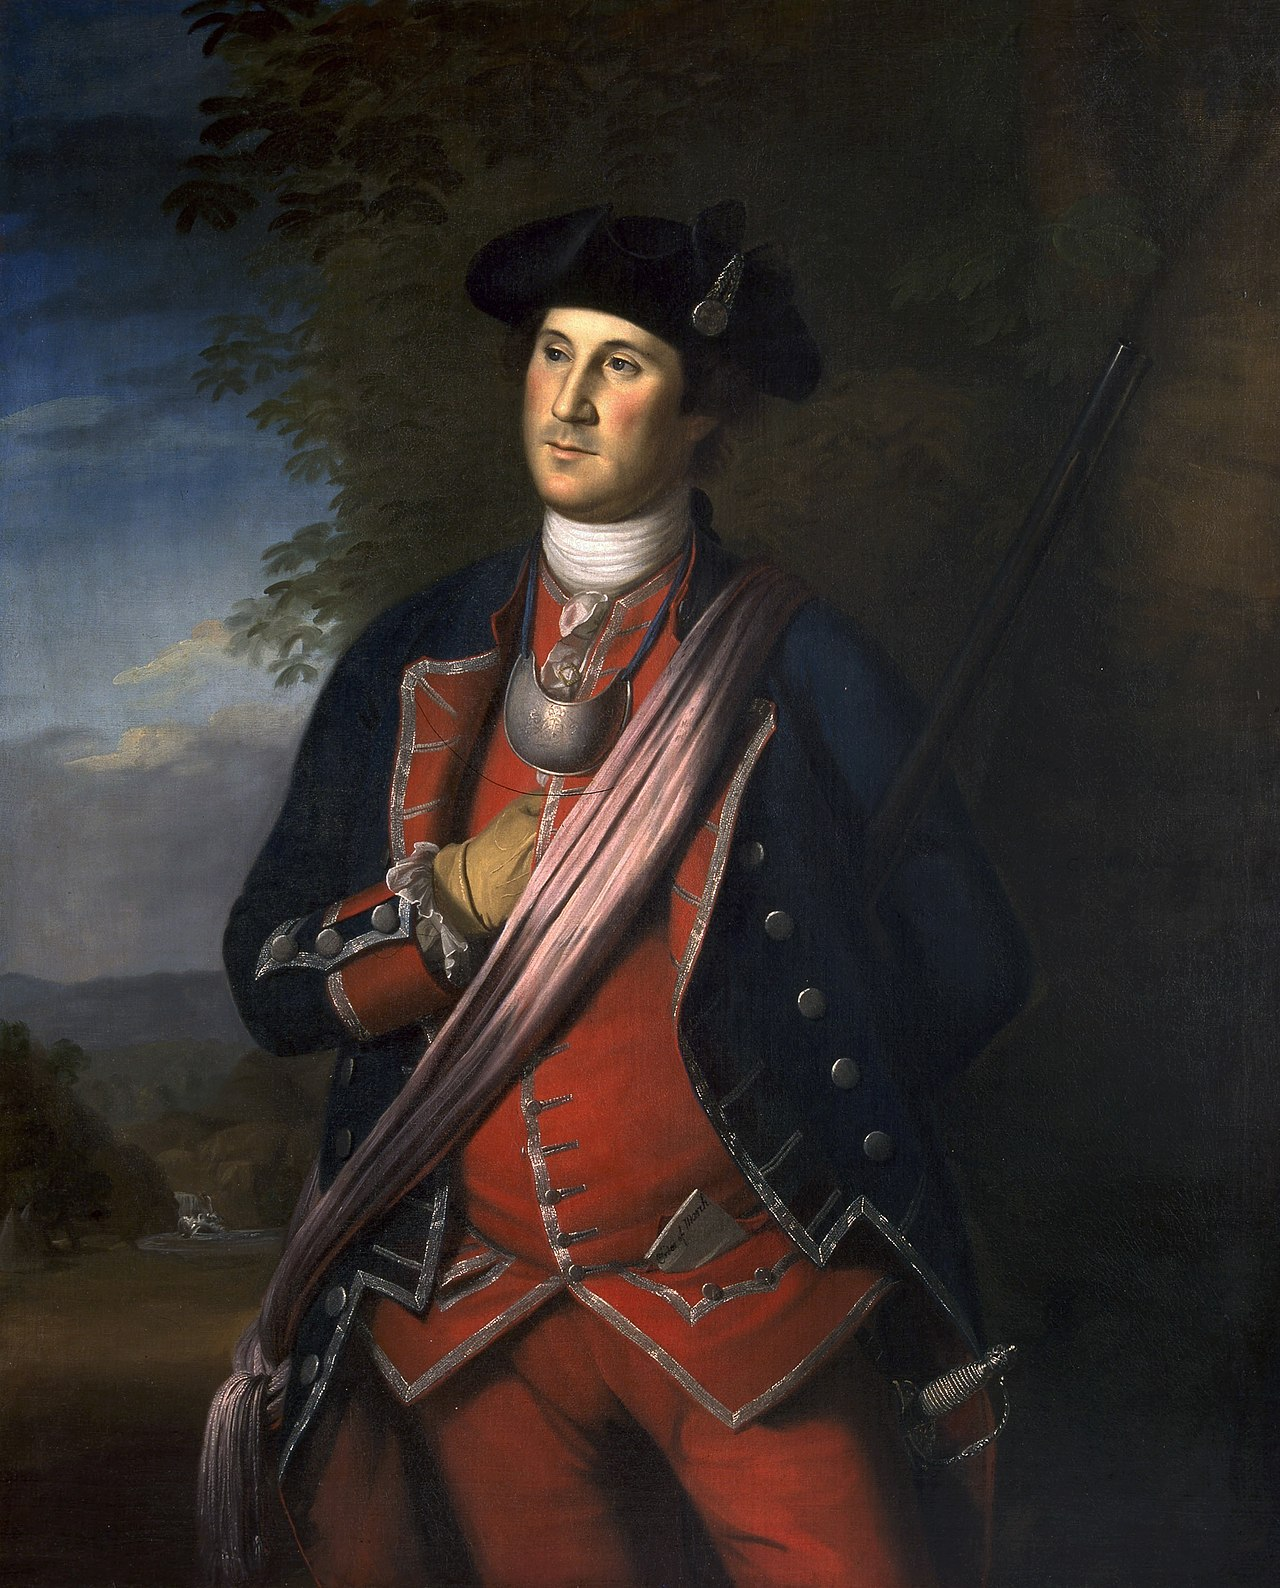 A magnificent portrait of George Washington, the leader of this battle, by Charles Wilson Peale